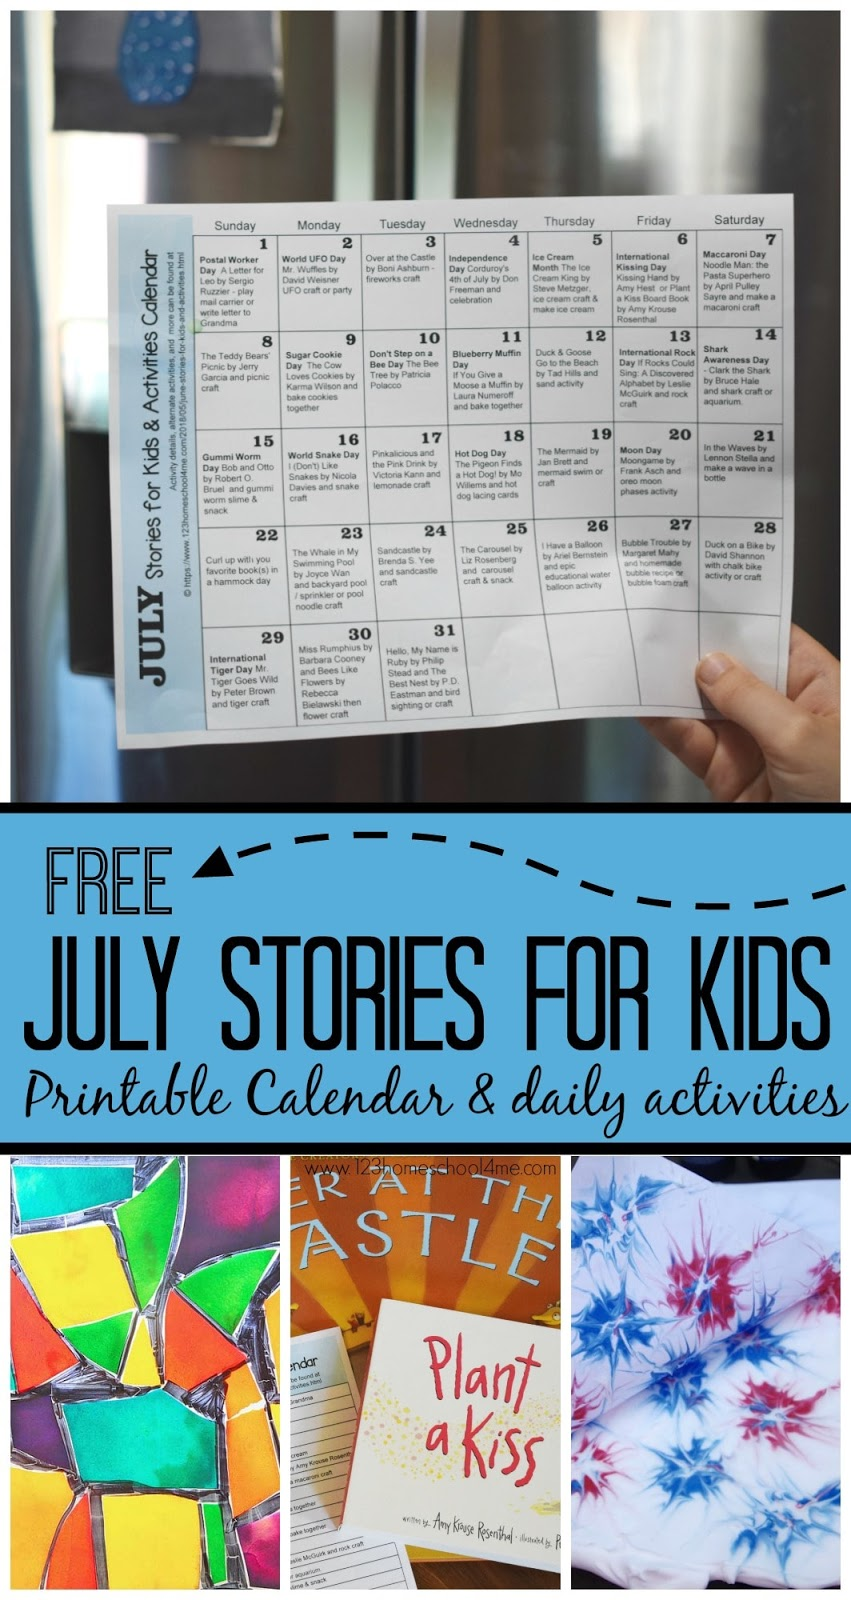 FREE July Stories for Kids & Activity Calendar